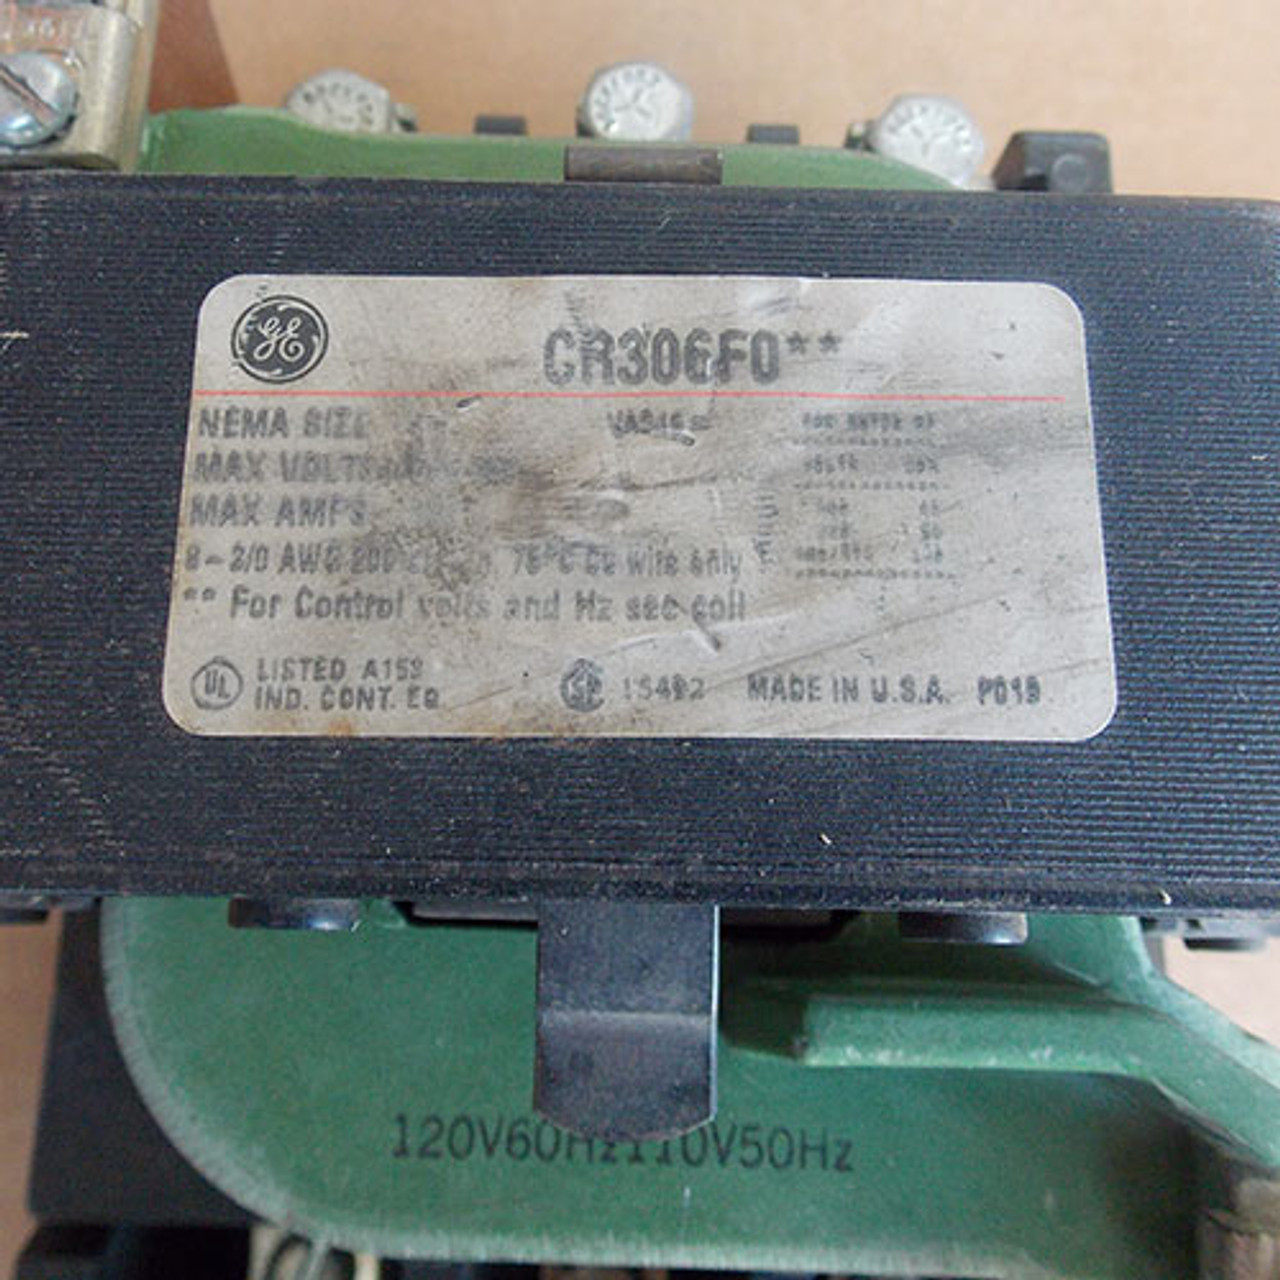 GE CR306F0** Size 4 Magnetic Starter 3 Pole 120 Volts Coil - Used